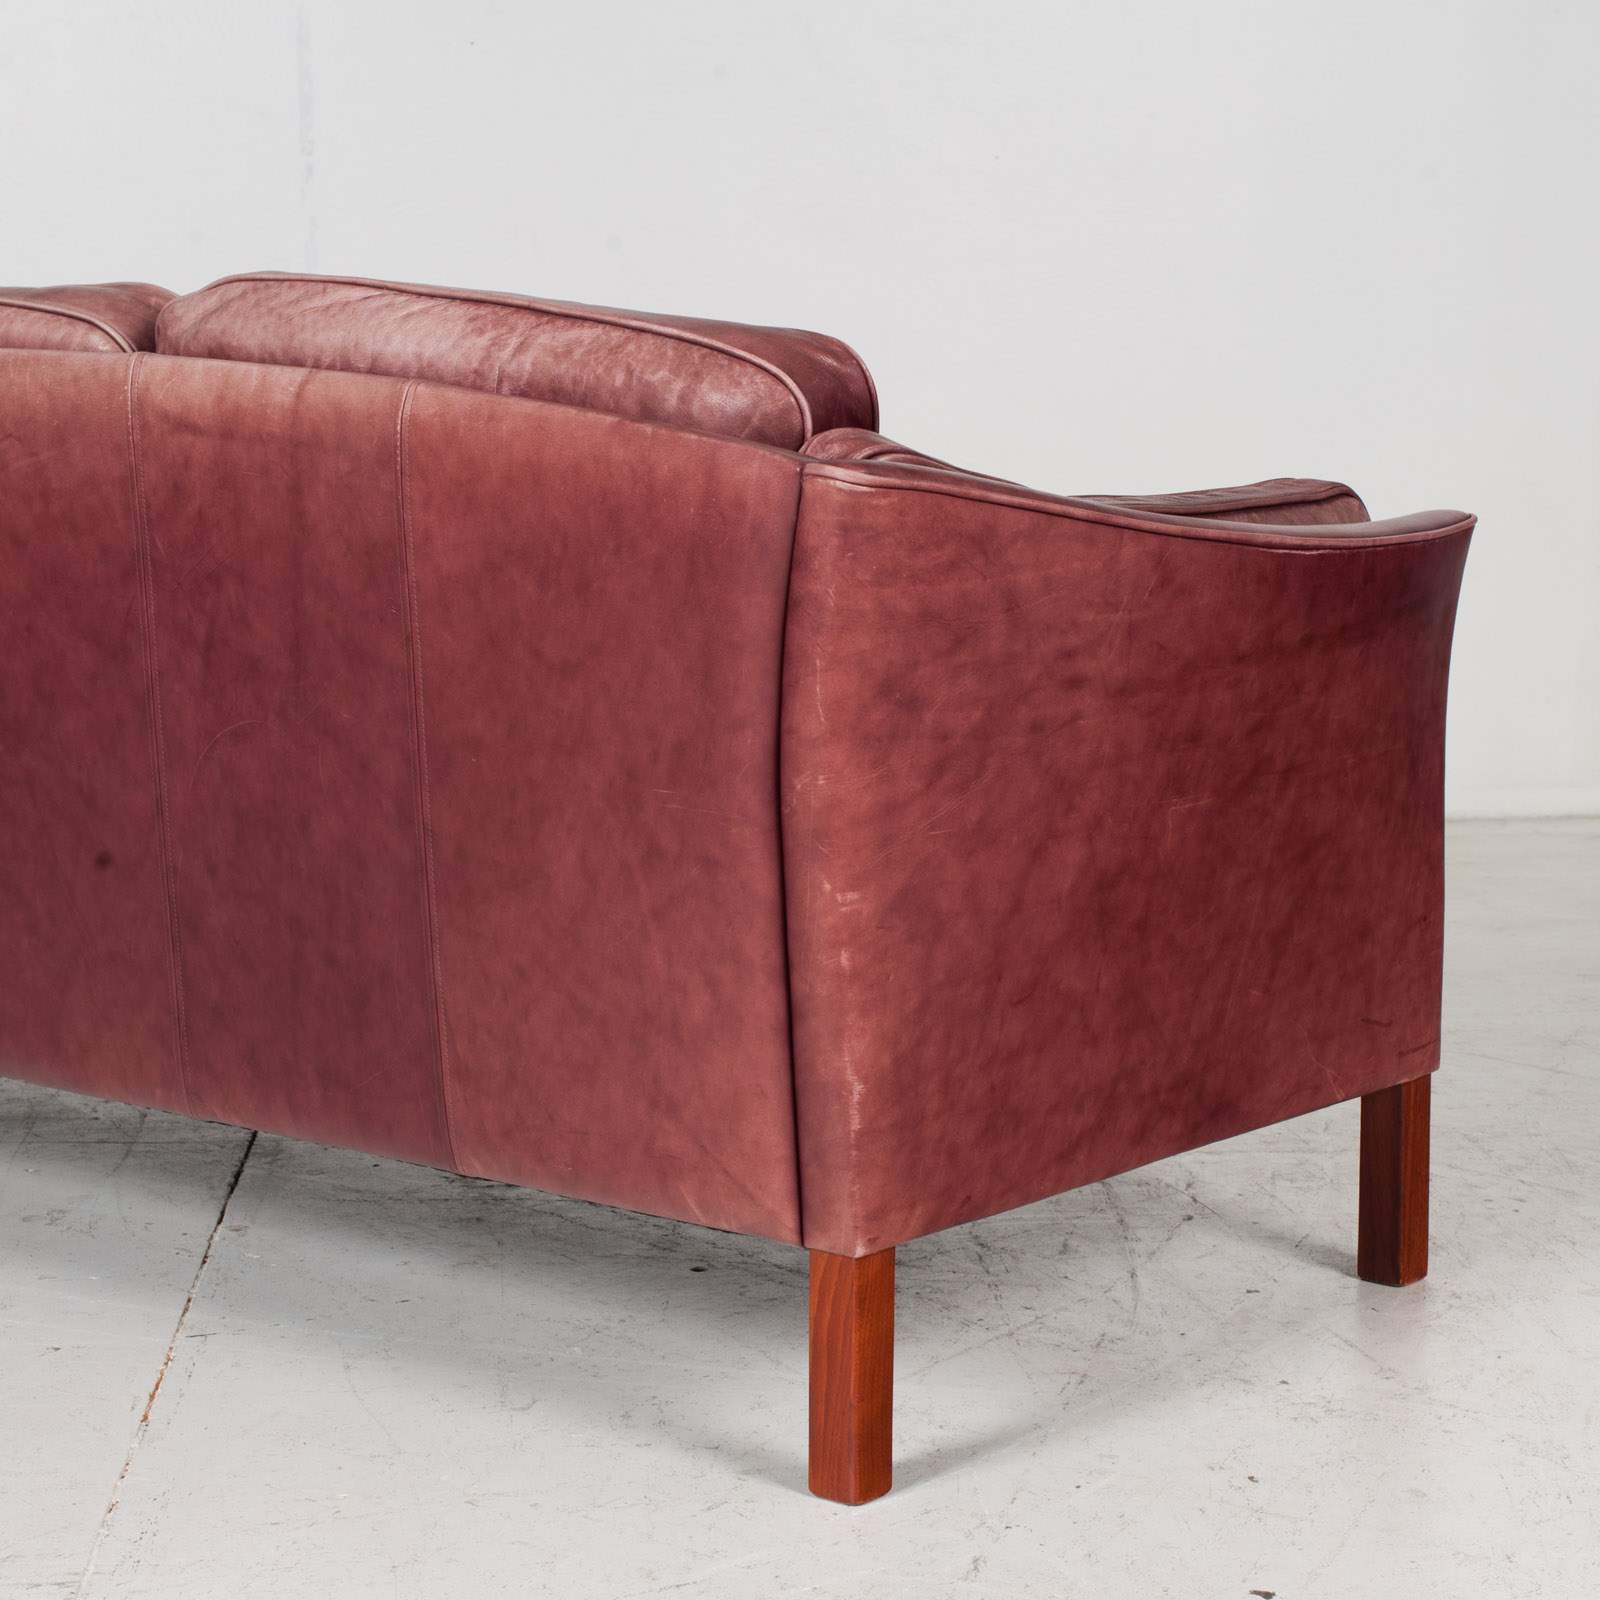 3 Seat Sofa By Mogens Hansen In Red Leather, 1960s, Denmark 8